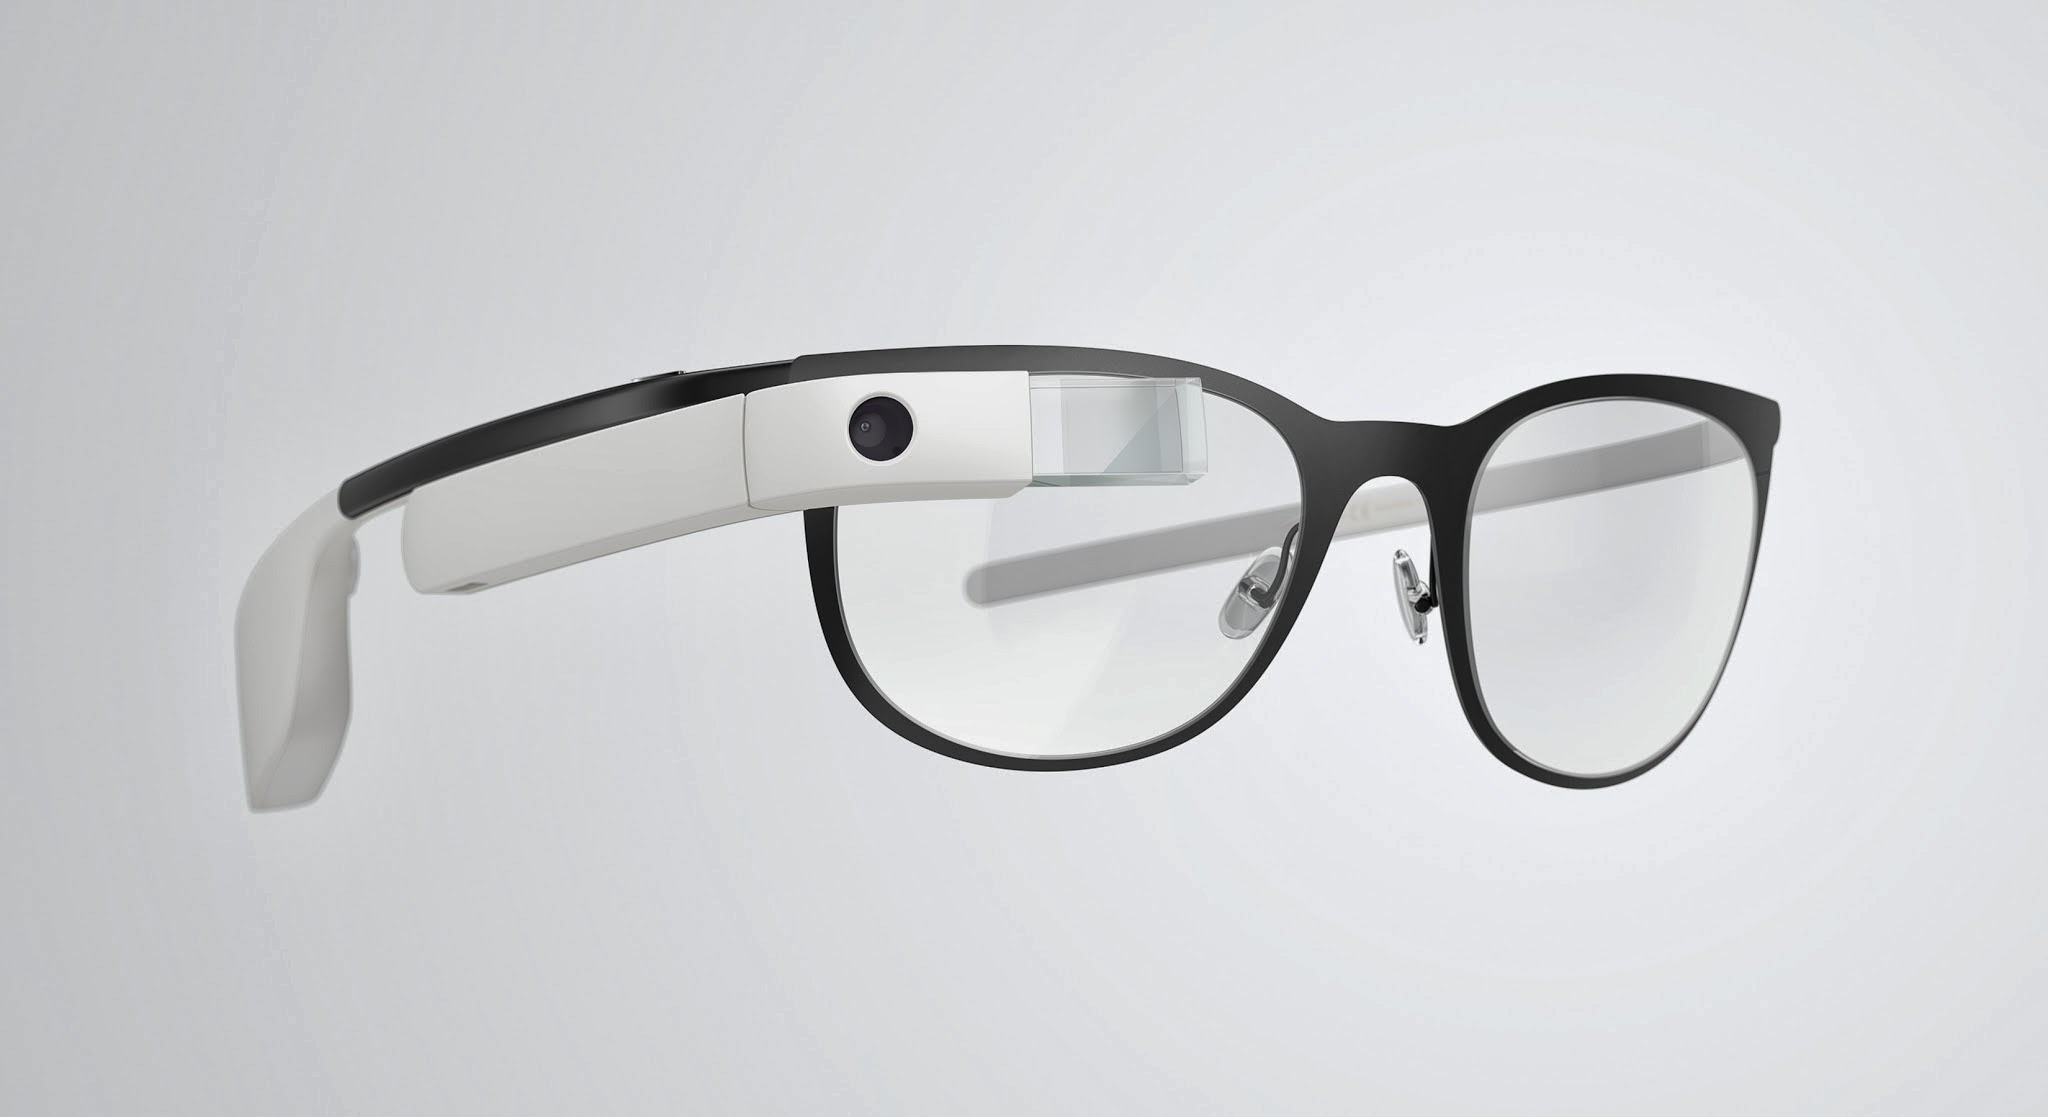 glass4 Google Glass can now be used with regular glasses after Google introduces $225 frames